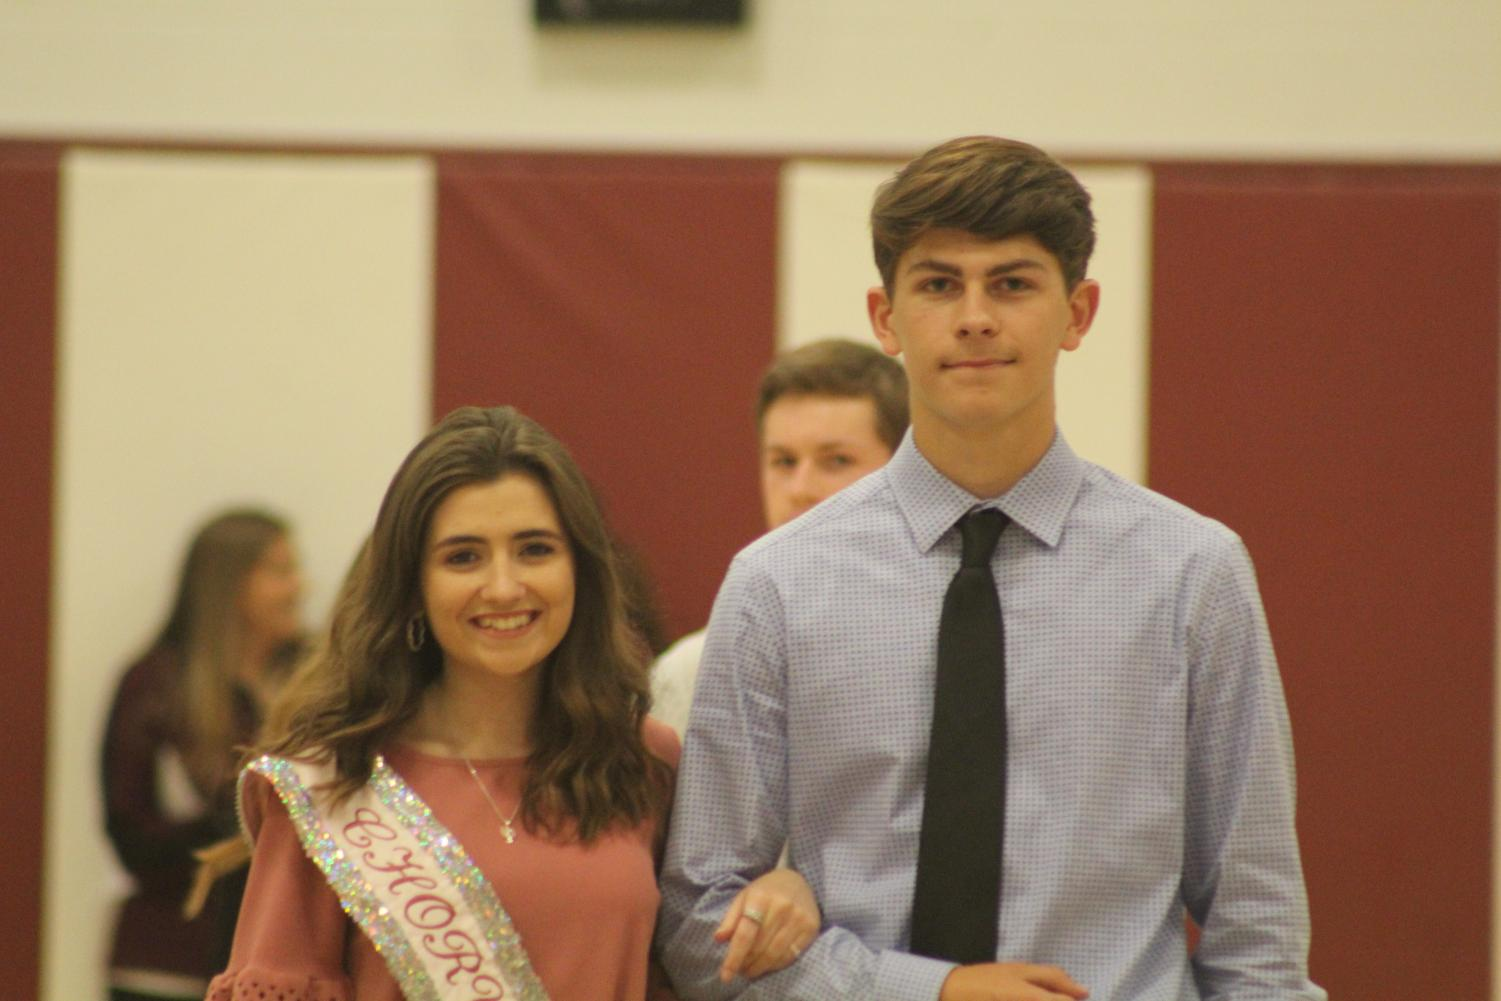 Senior Raquel Dunio and her escort, senior Wesley Young, represent chorus at the Homecoming assembly. At the assembly, candidates were introduced to the student body.